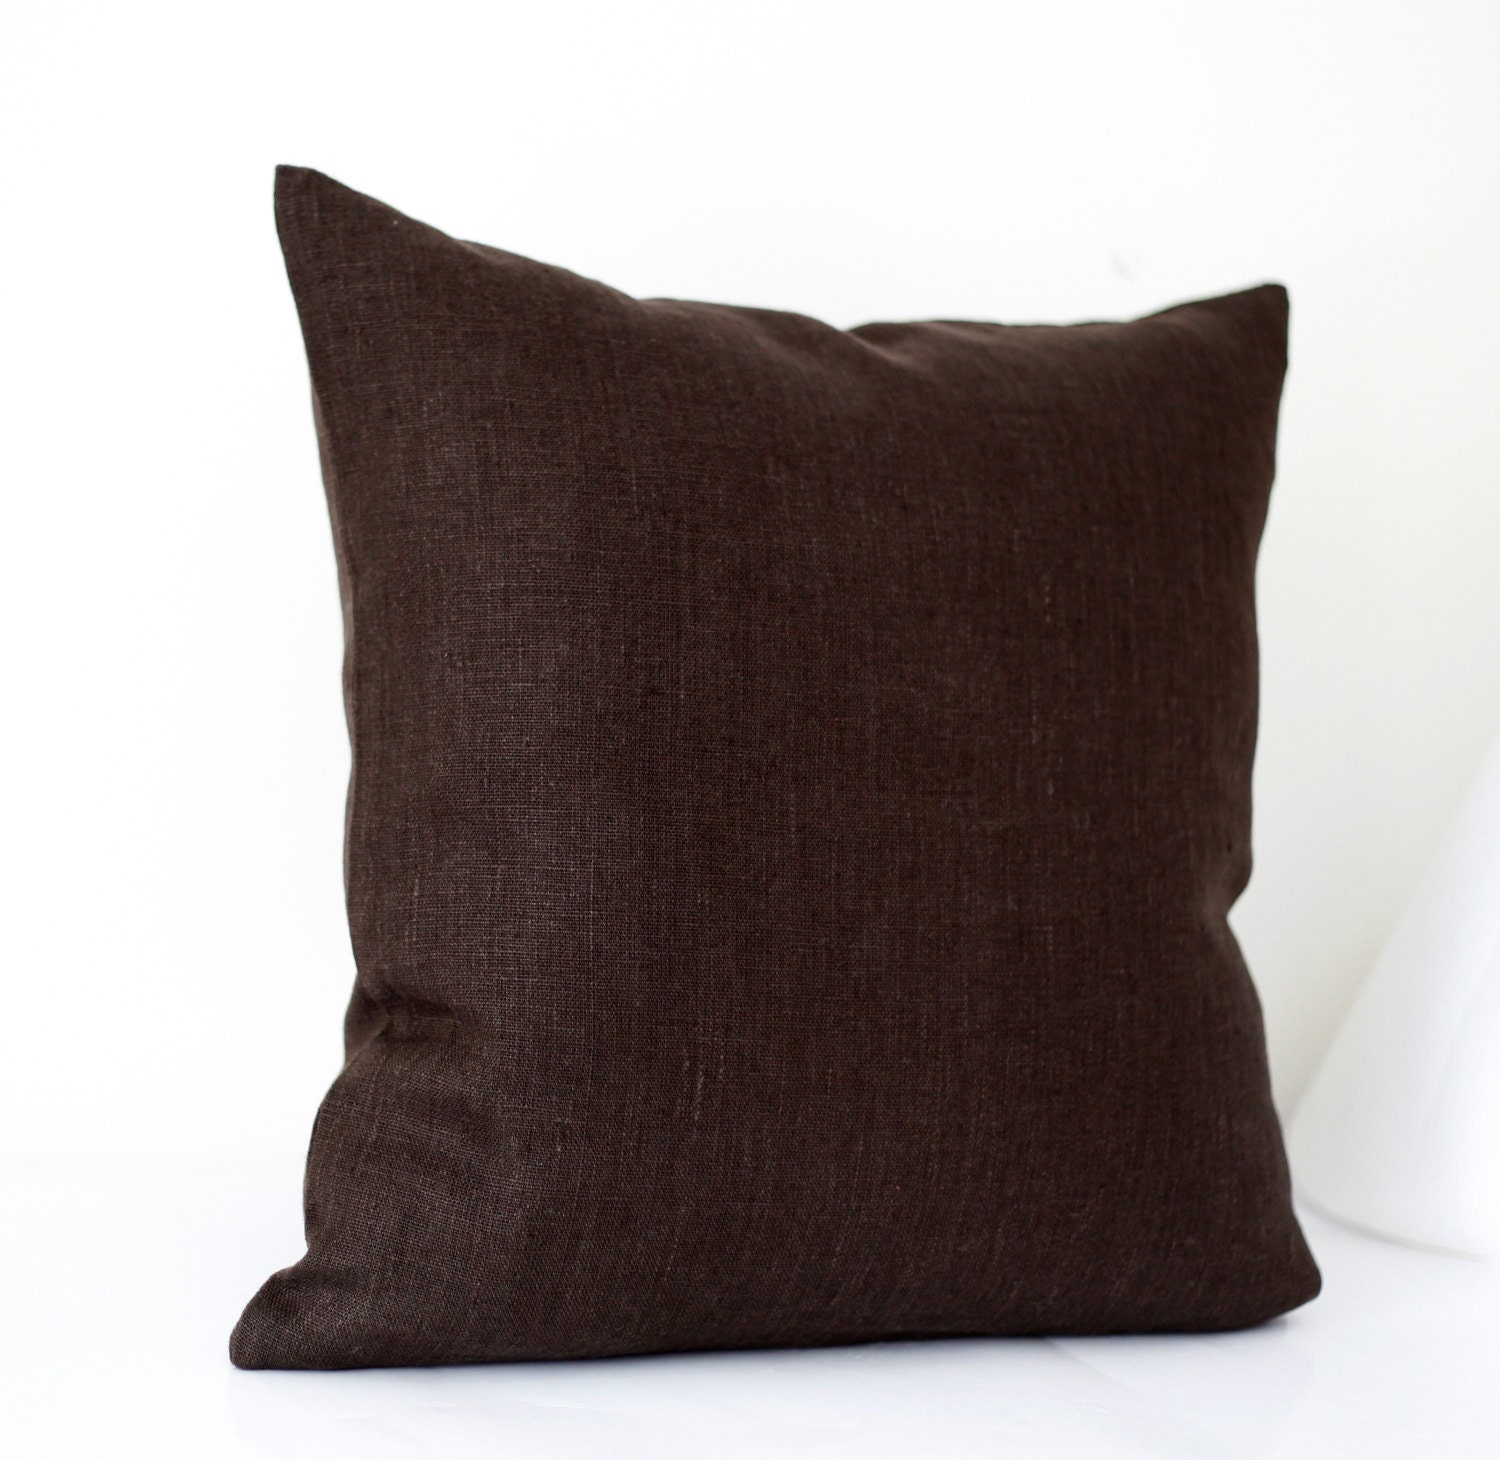 Throw Pillows For A Chocolate Brown Couch : Linen sham chocolate brown throw pillows pillow by pillowlink